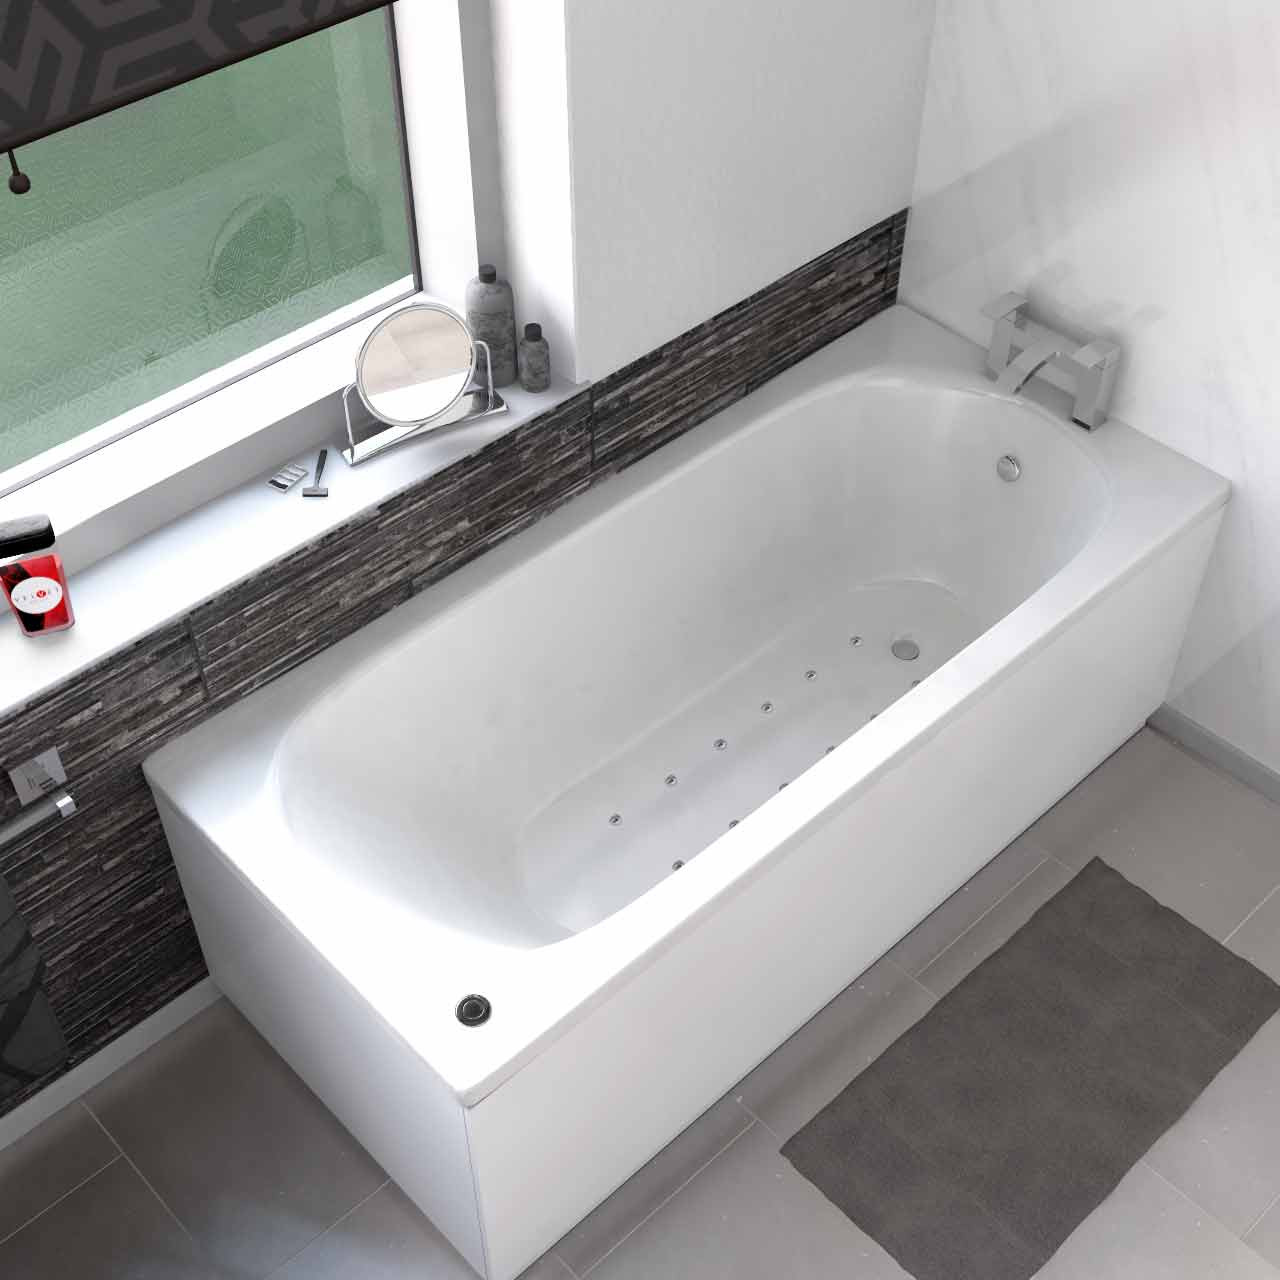 Compact End Tap 12 Jet Easifit Spa Whirlpool Bath 1700x700